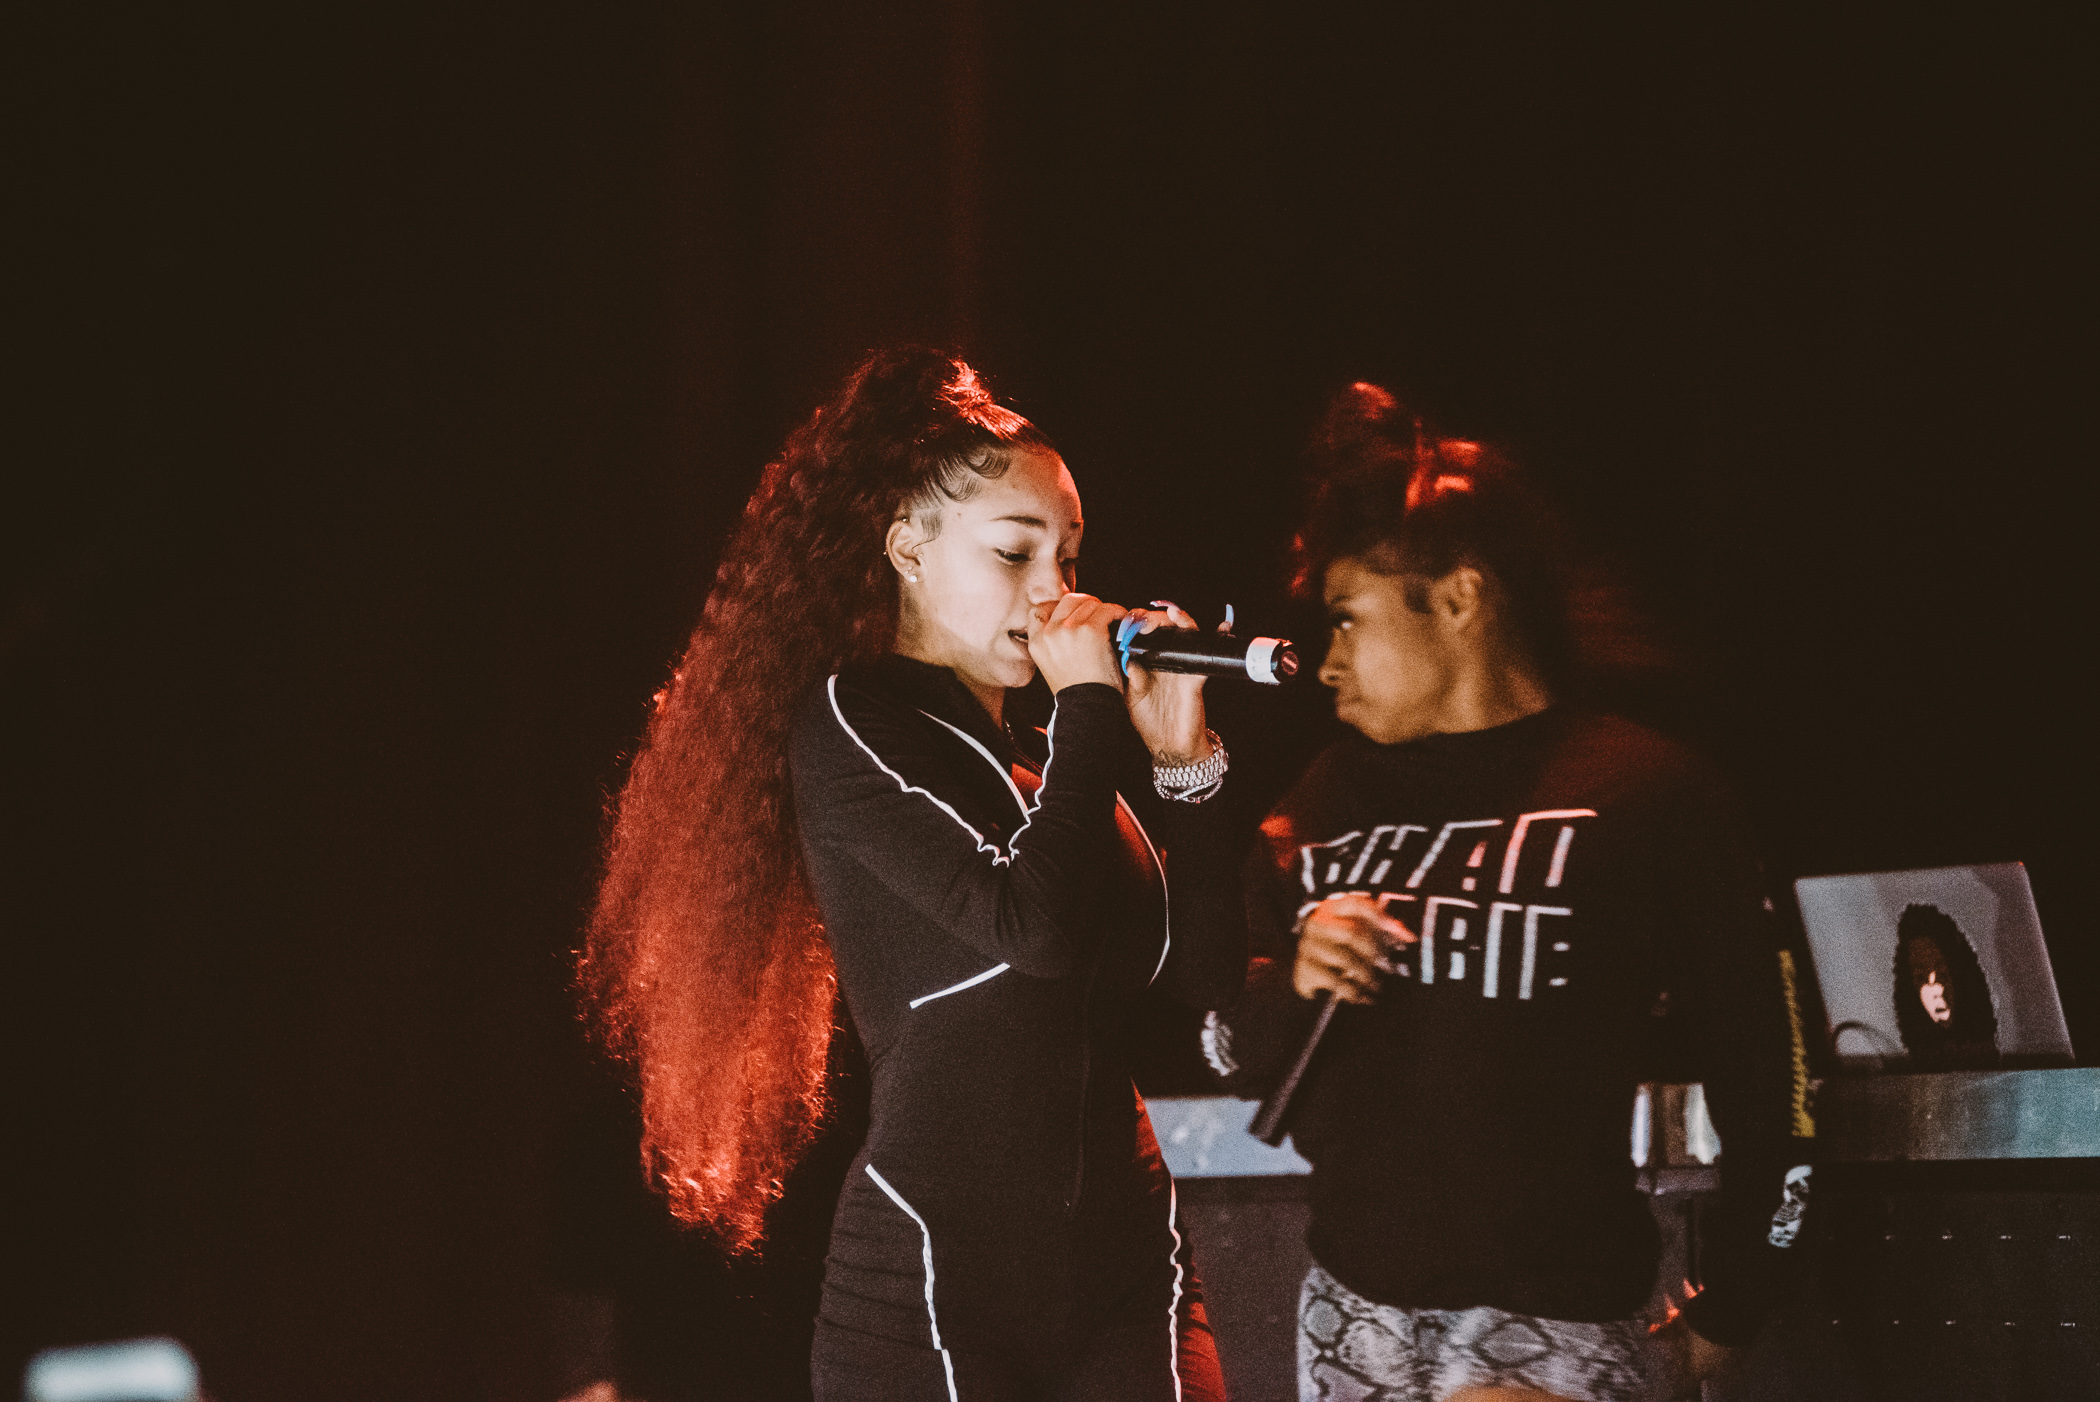 1_Bhad_Bhabie-VENUE-Timothy_Nguyen-20190510 (1 of 45).JPG